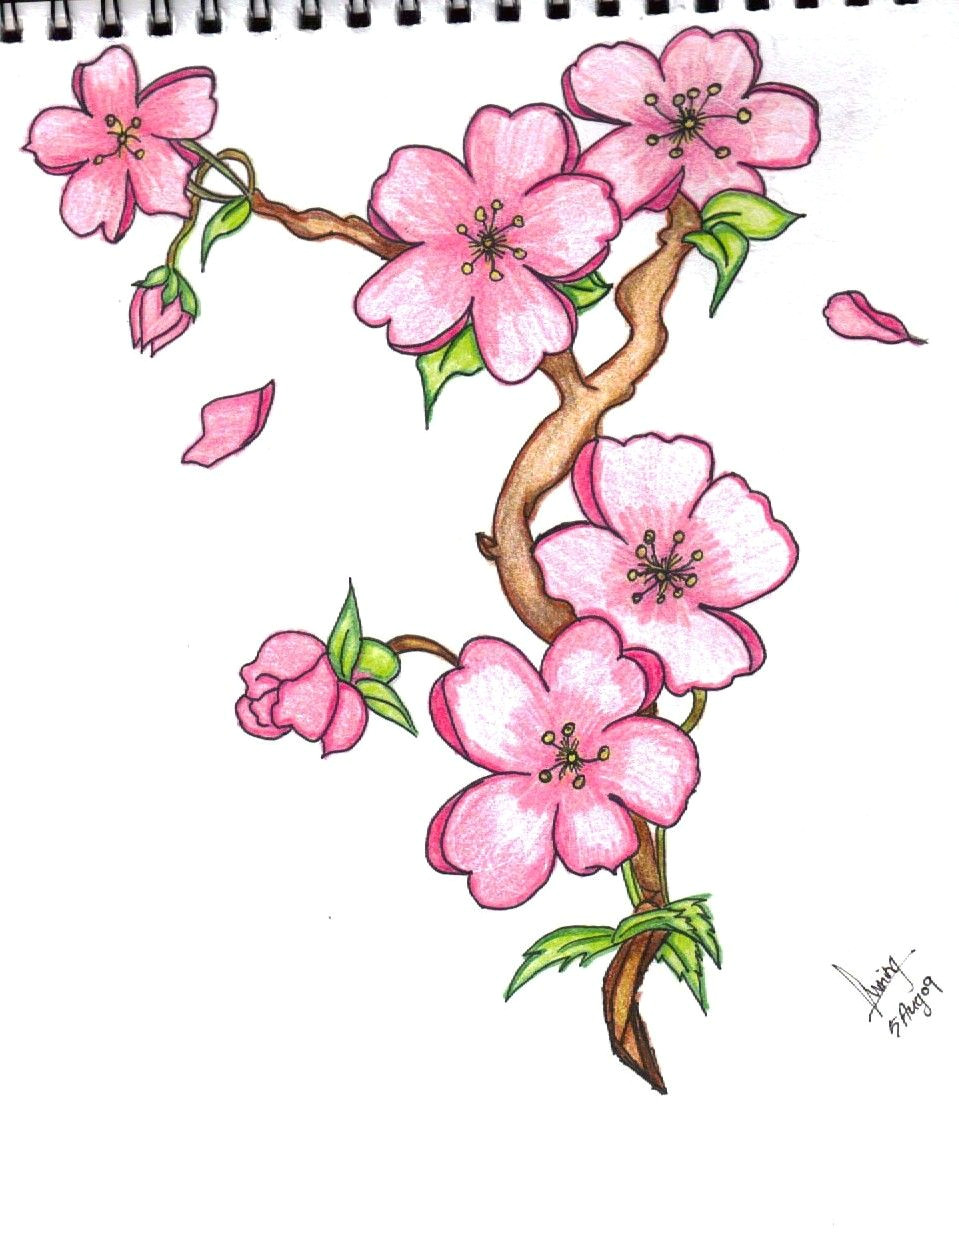 Graphic Drawings Of Flowers Pin by Marvin todd On Drawing Flowers In 2019 Pinterest Drawings